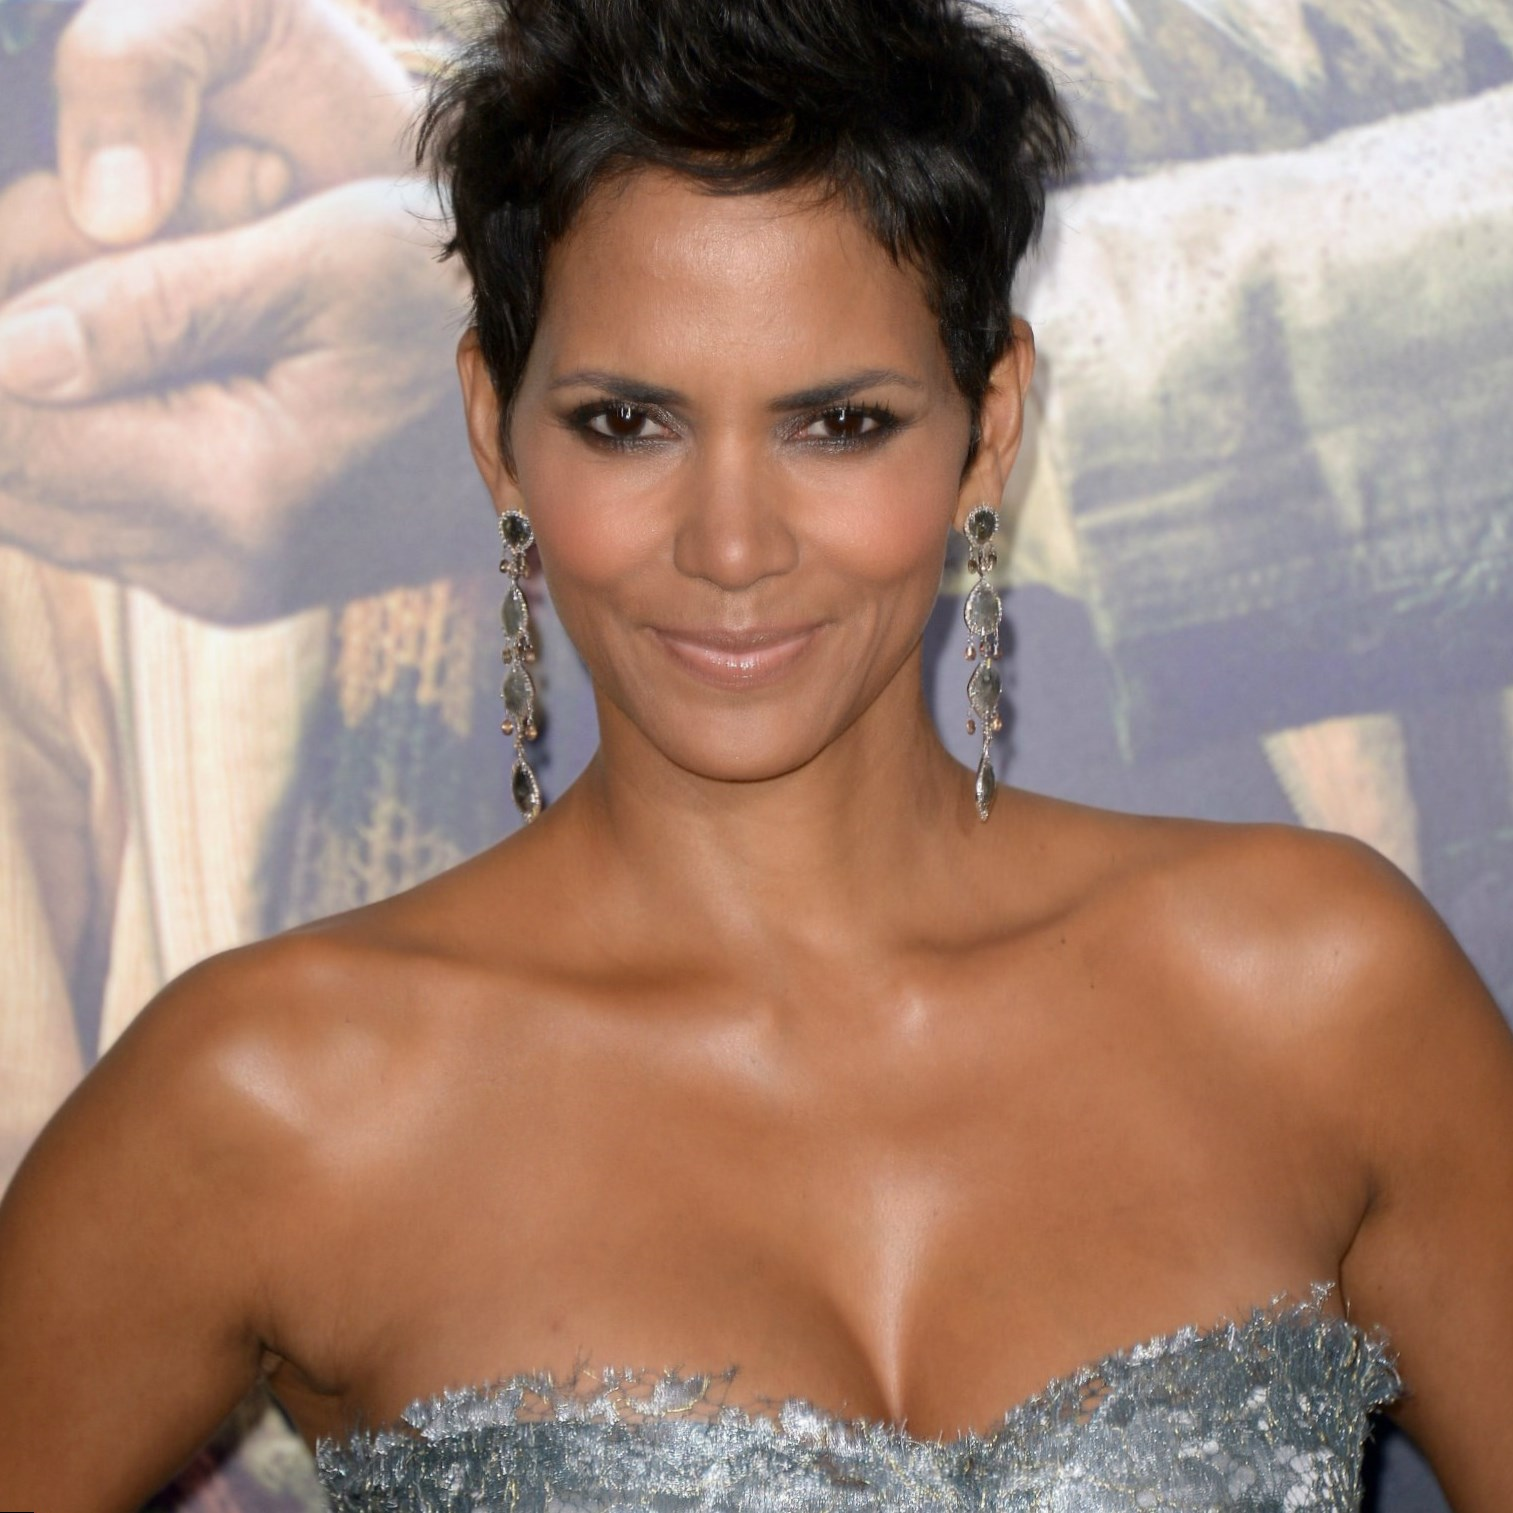 Halle Berry - Height, Weight, Age